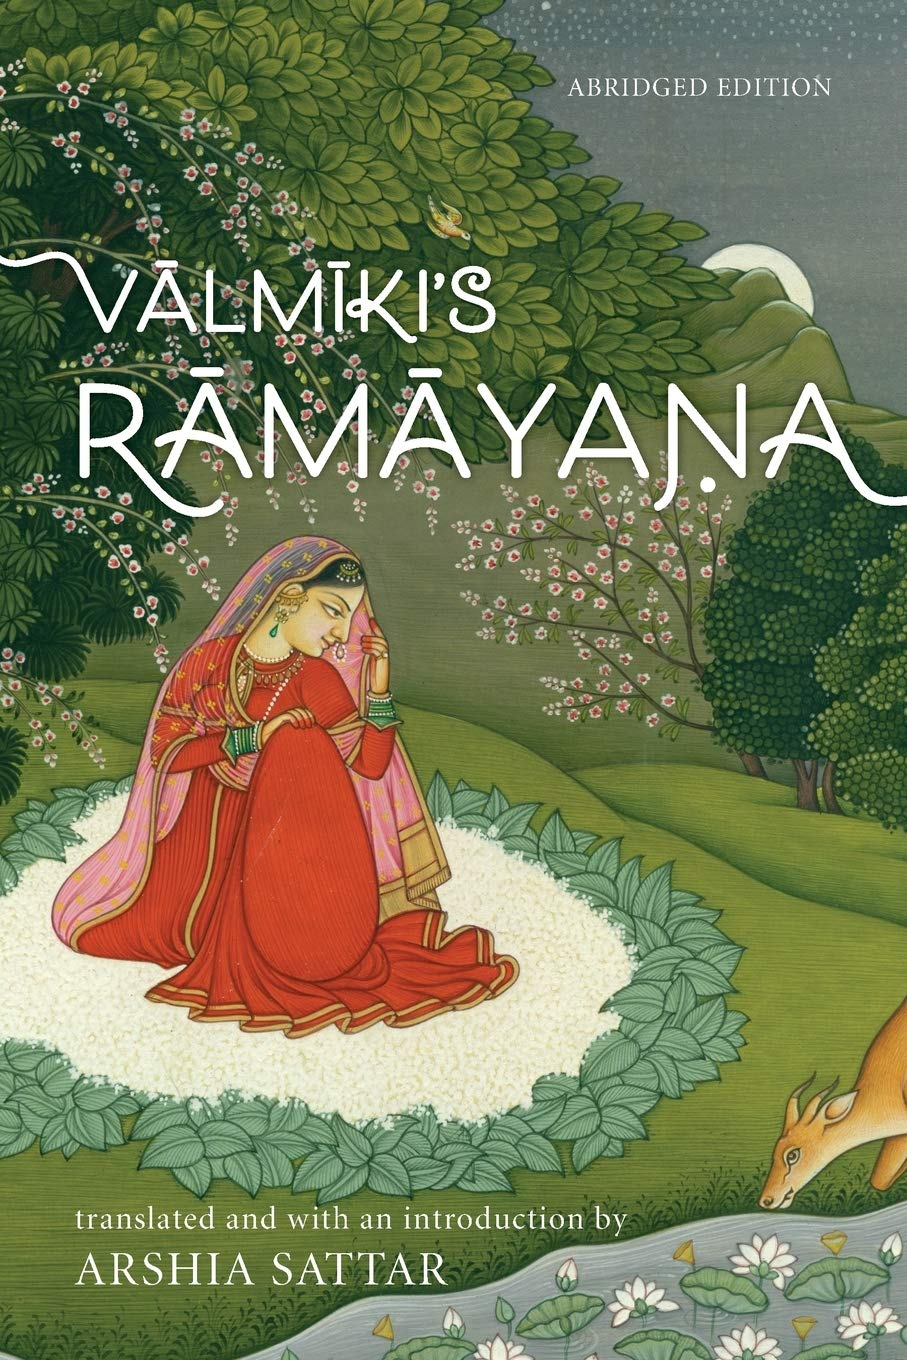 Valmiki's Ramayana Abridged Edition